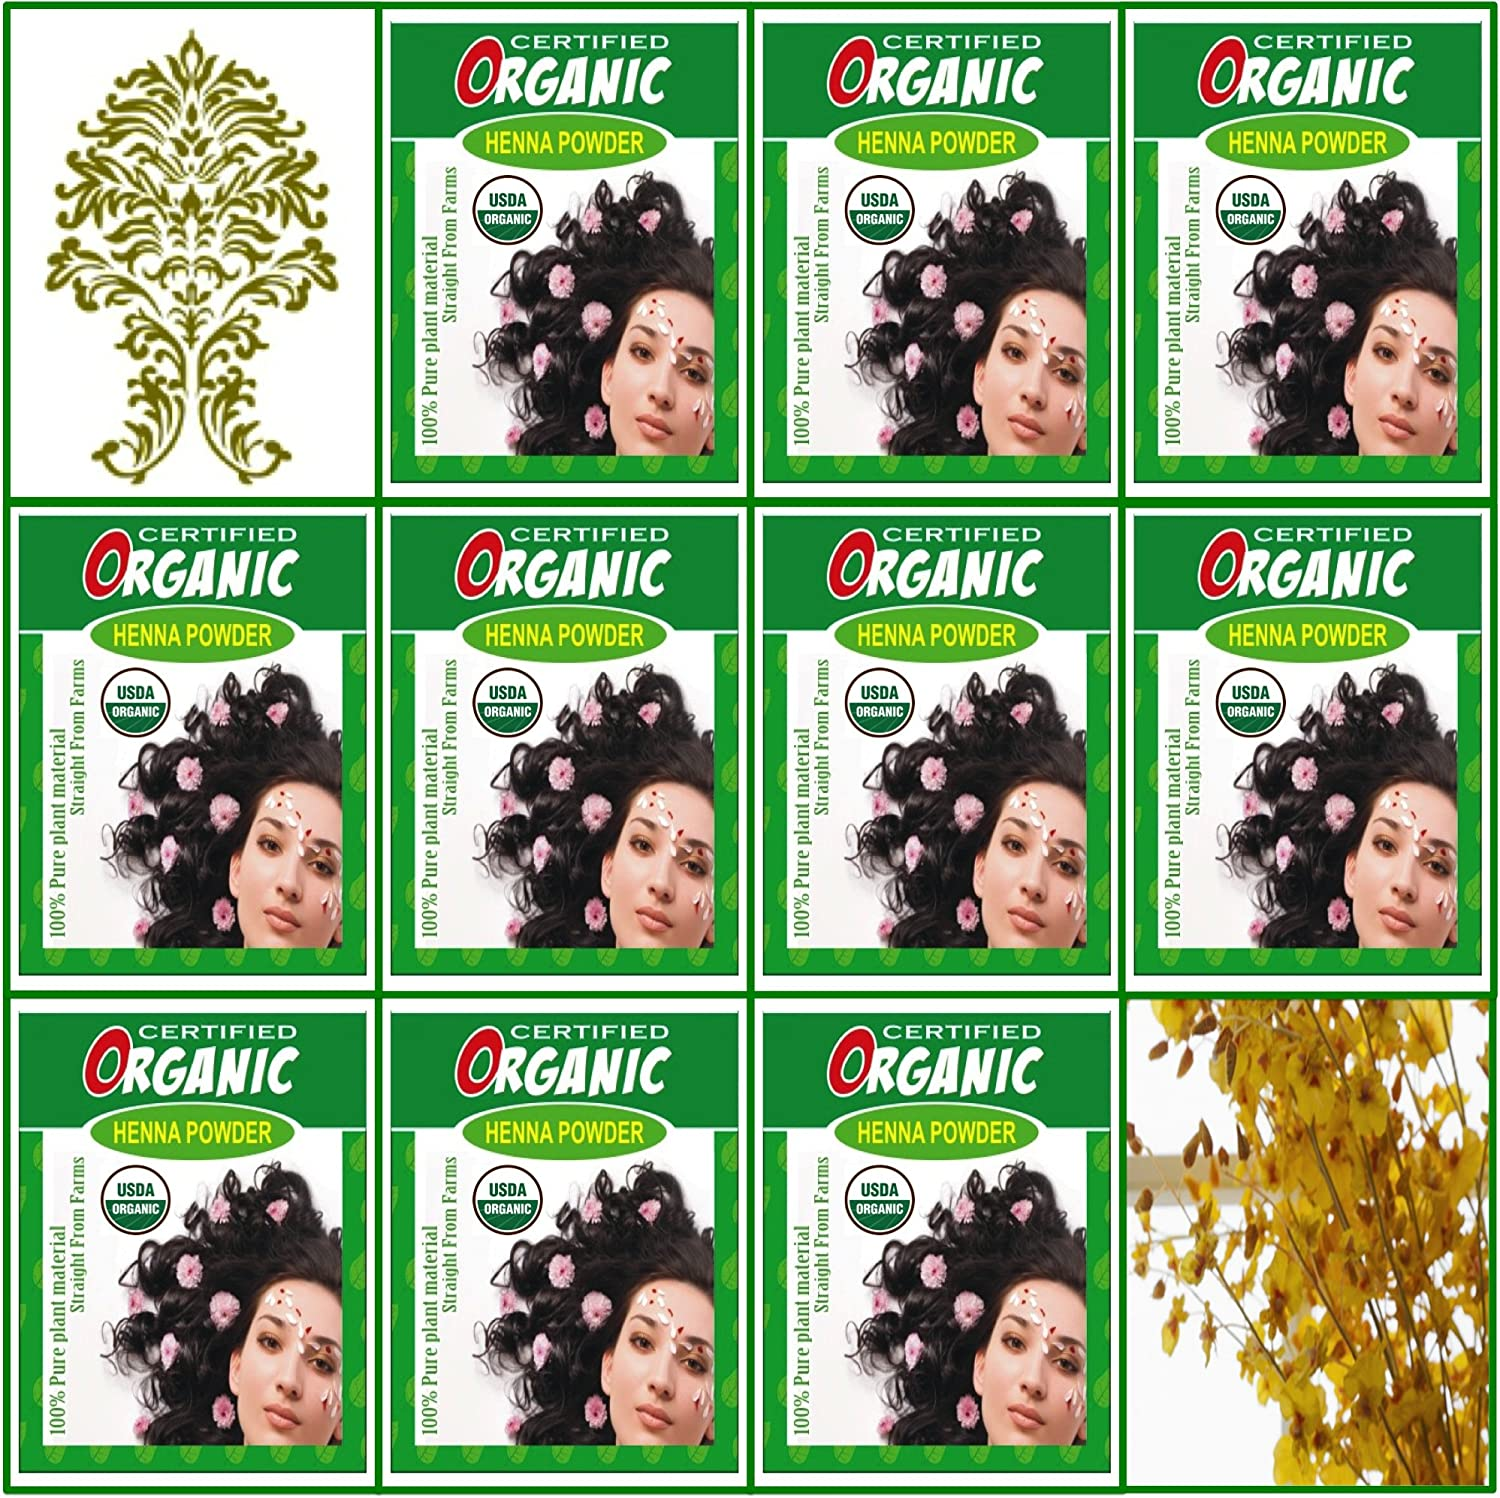 (Qty. 10) 100g Certified Organic Henna Powder for Hair Color Conditioning. Golden Brown Color.